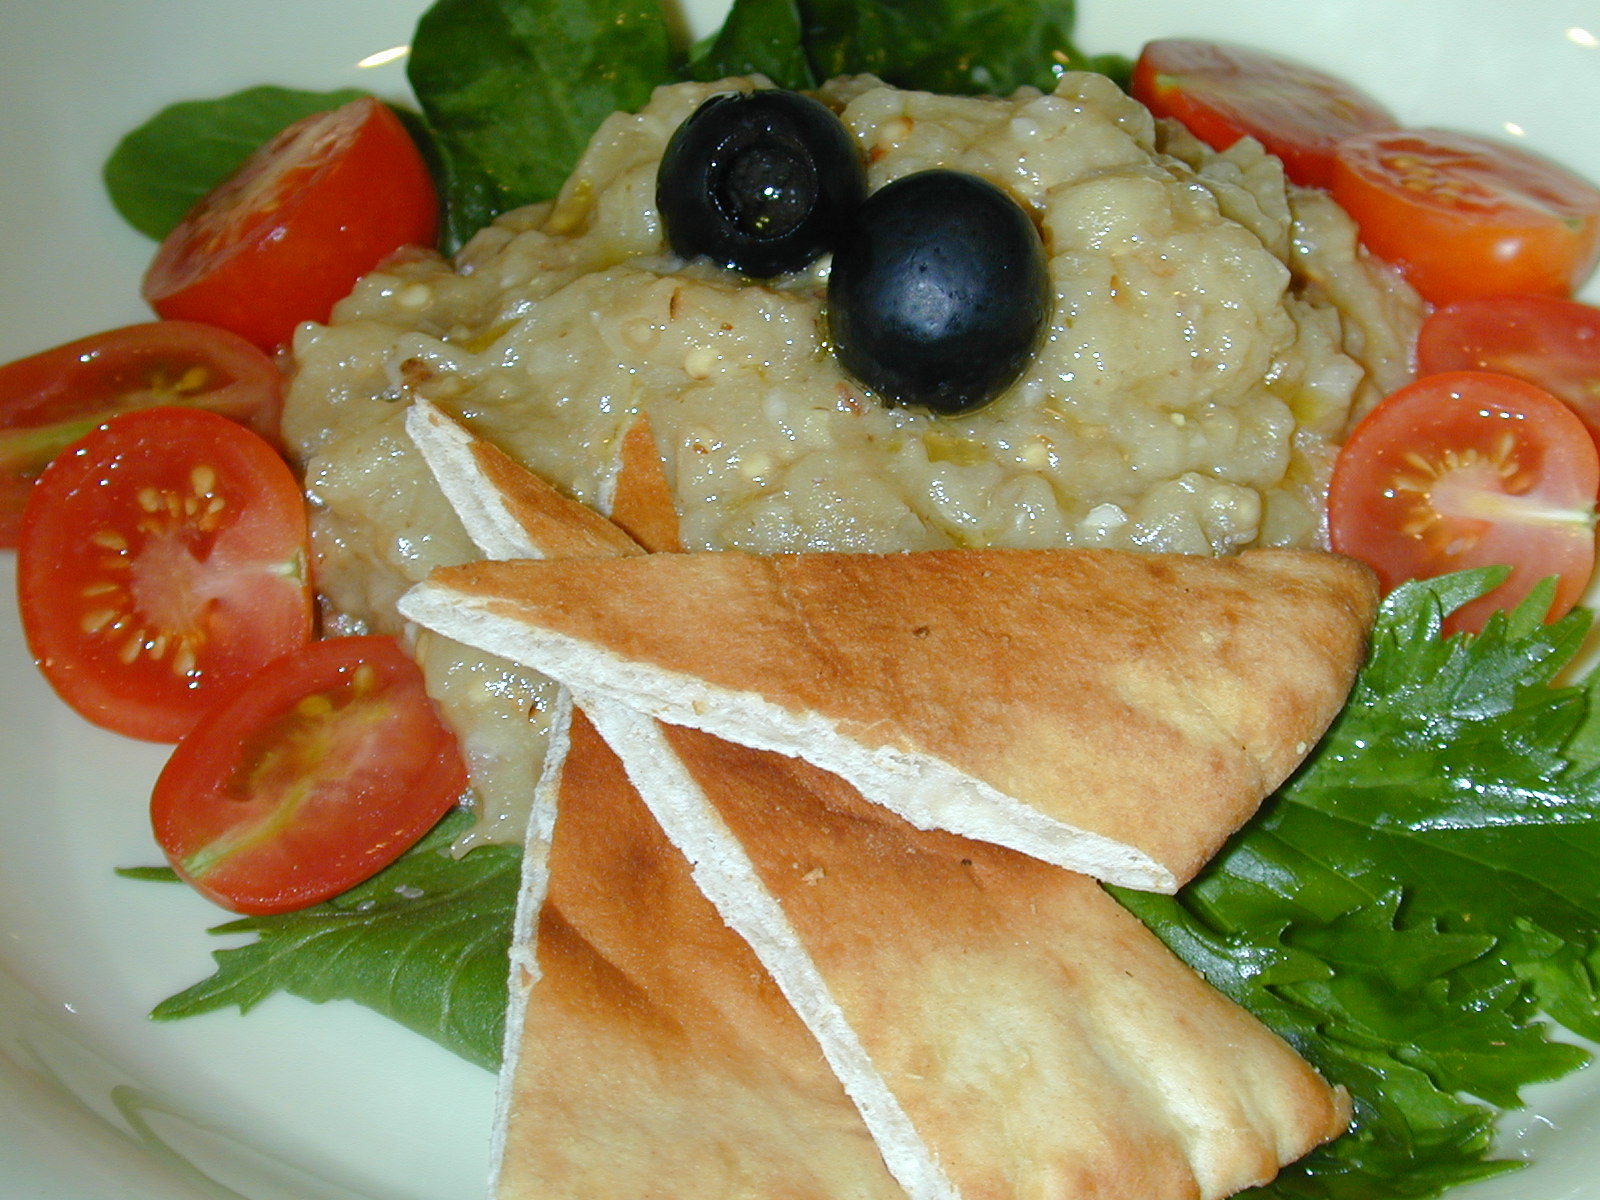 There are several ways of eating Baba Ganouj, here it has been served with bread and vegetable garnish